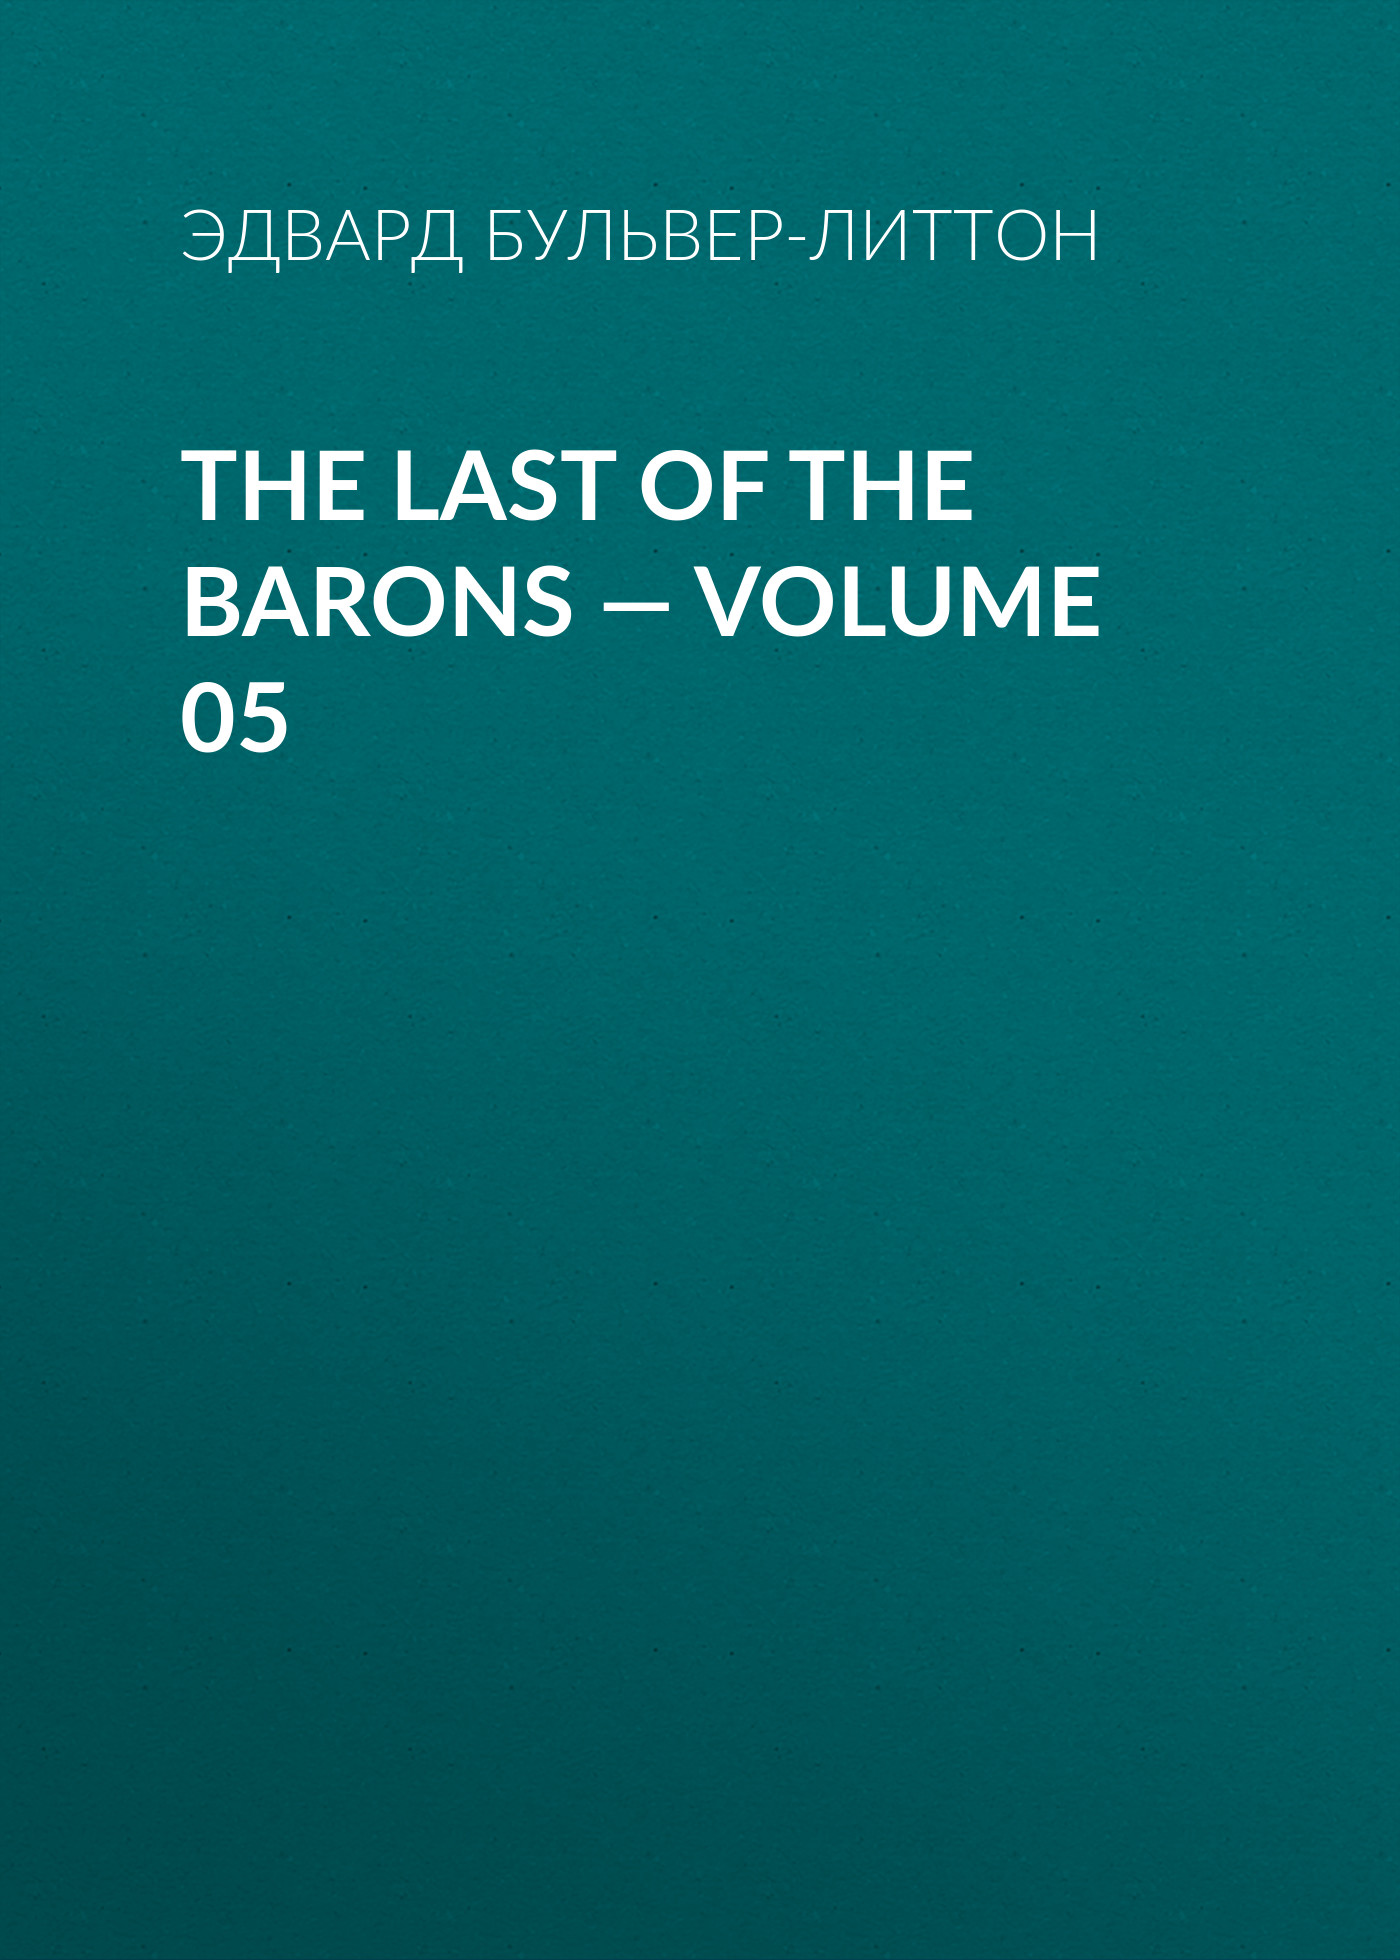 Эдвард Бульвер-Литтон The Last of the Barons — Volume 05 fayrene preston the barons of texas tess